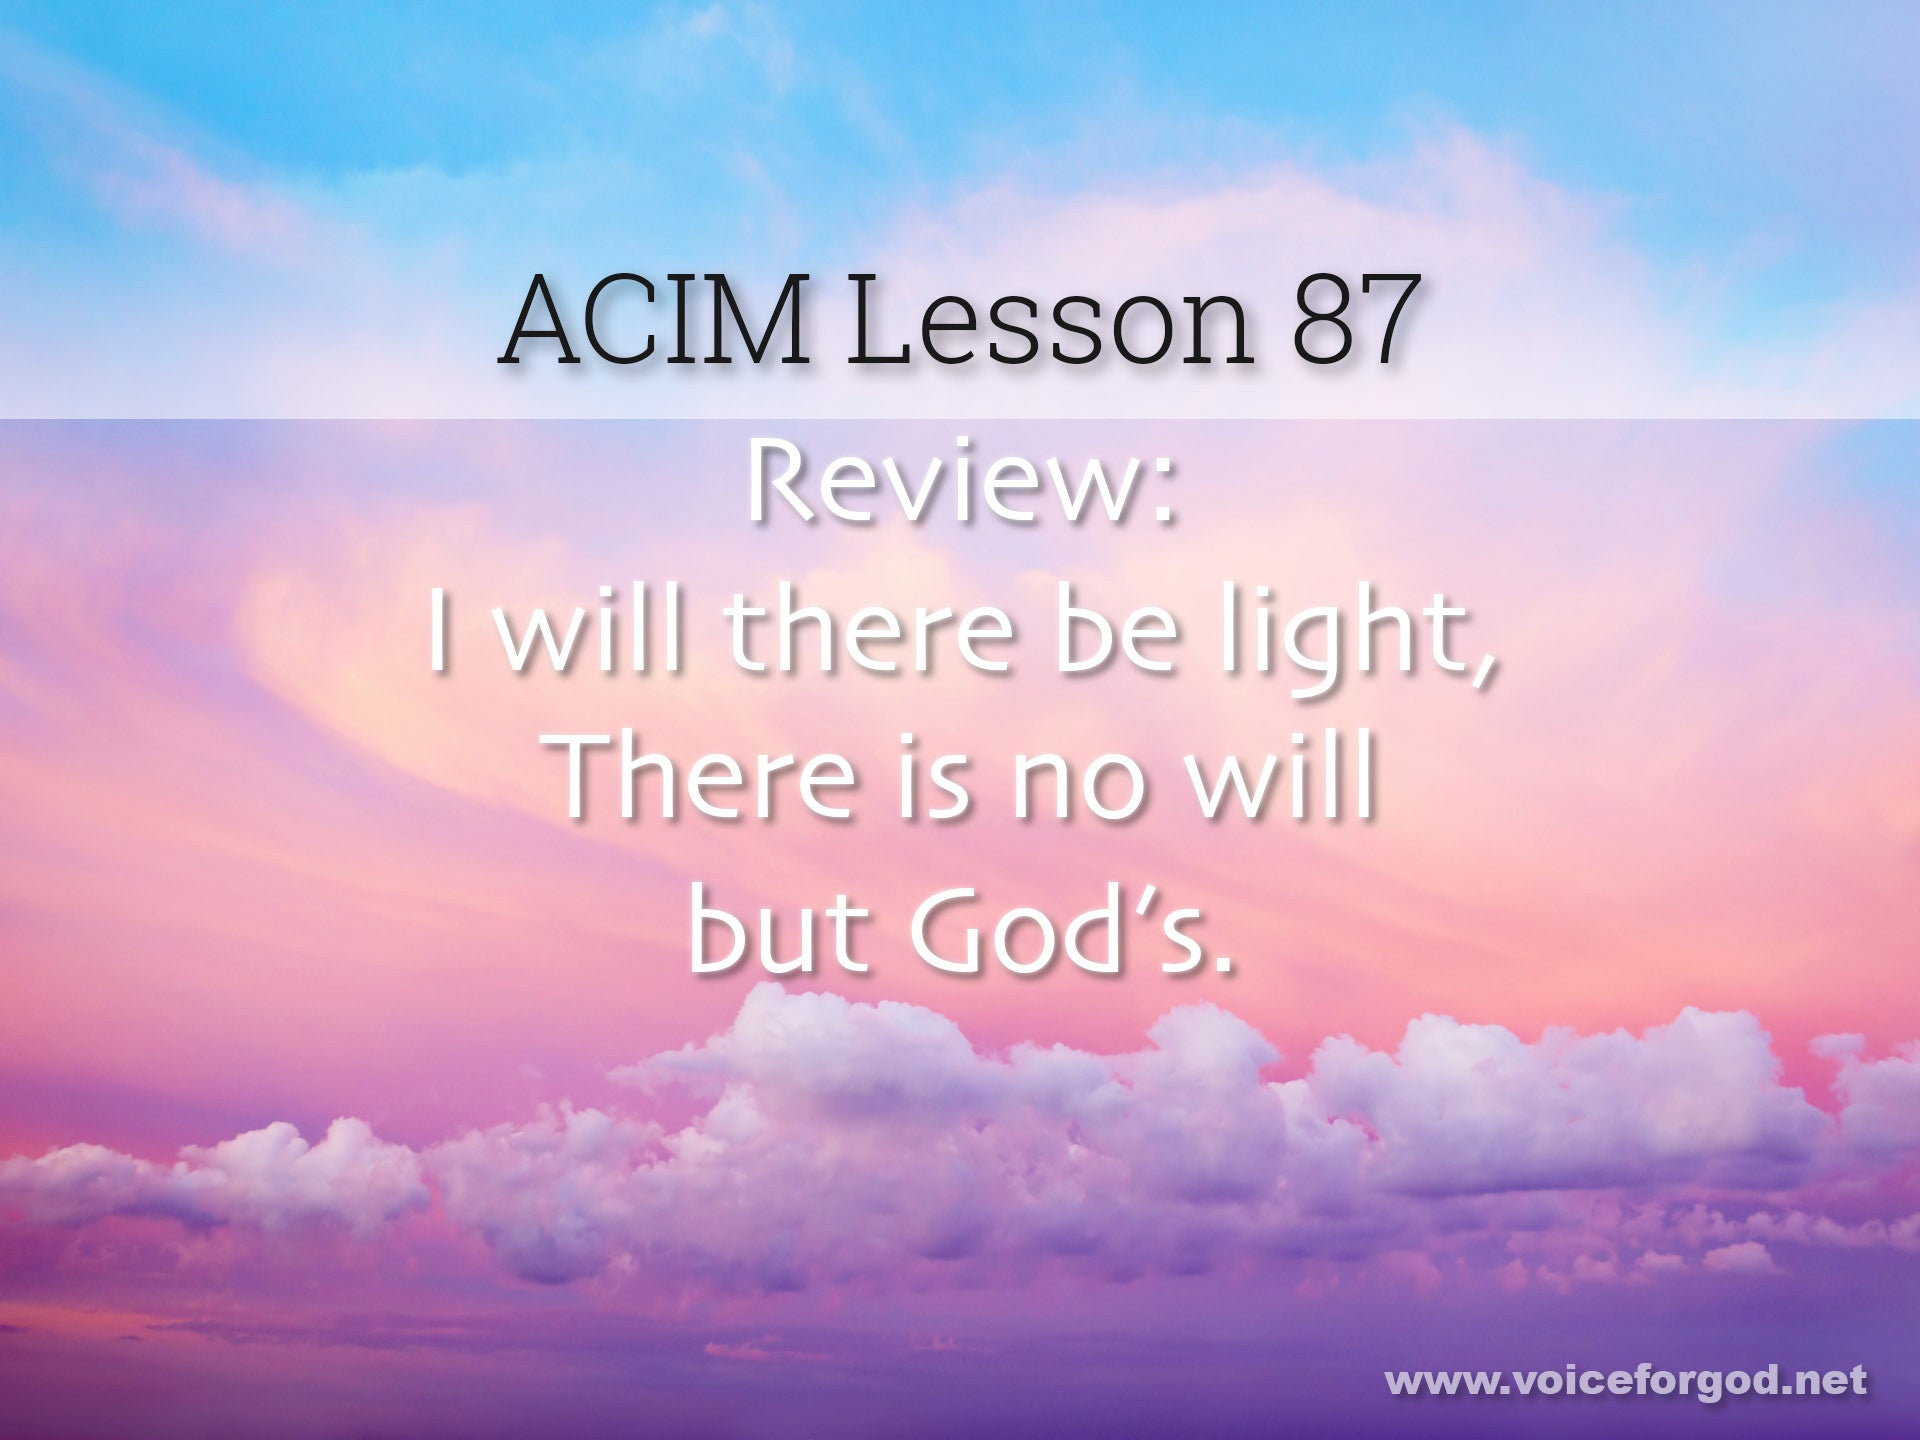 ACIM Lesson 87 - A Course in Miracles Workbook Lesson 87